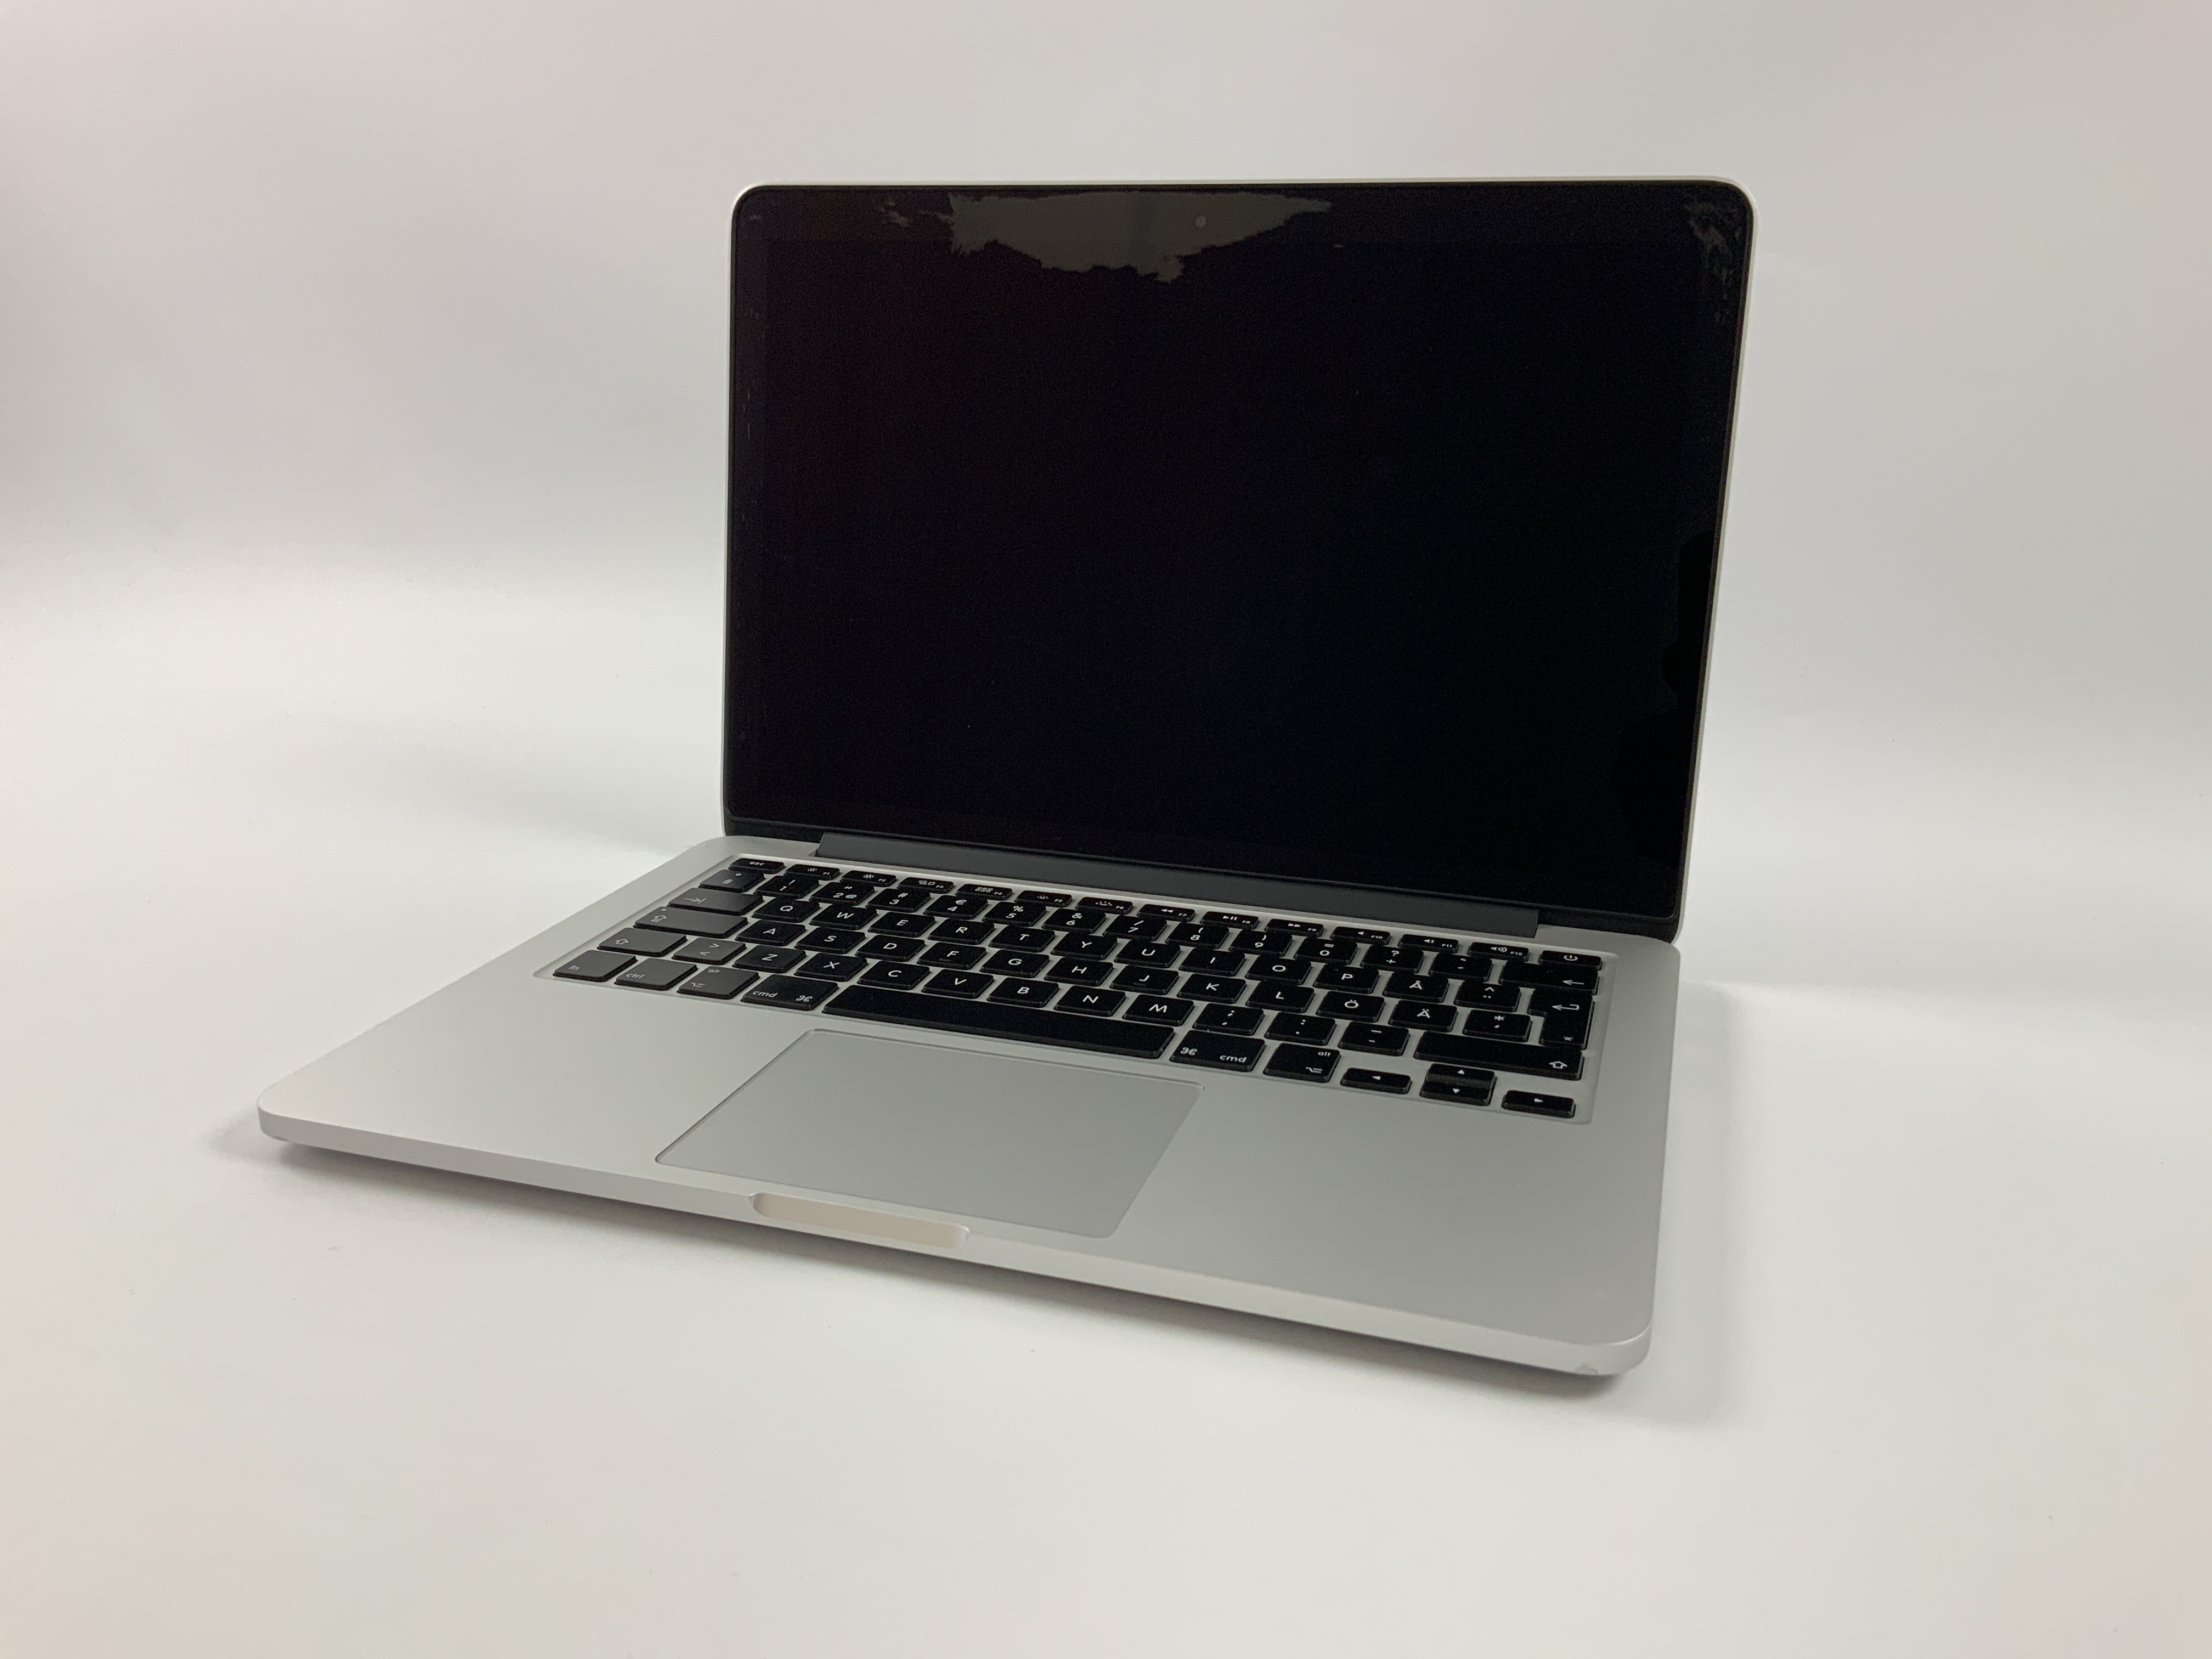 "MacBook Pro Retina 13"" Early 2015 (Intel Core i5 2.7 GHz 8 GB RAM 256 GB SSD), Intel Core i5 2.7 GHz, 8 GB RAM, 256 GB SSD, Bild 1"